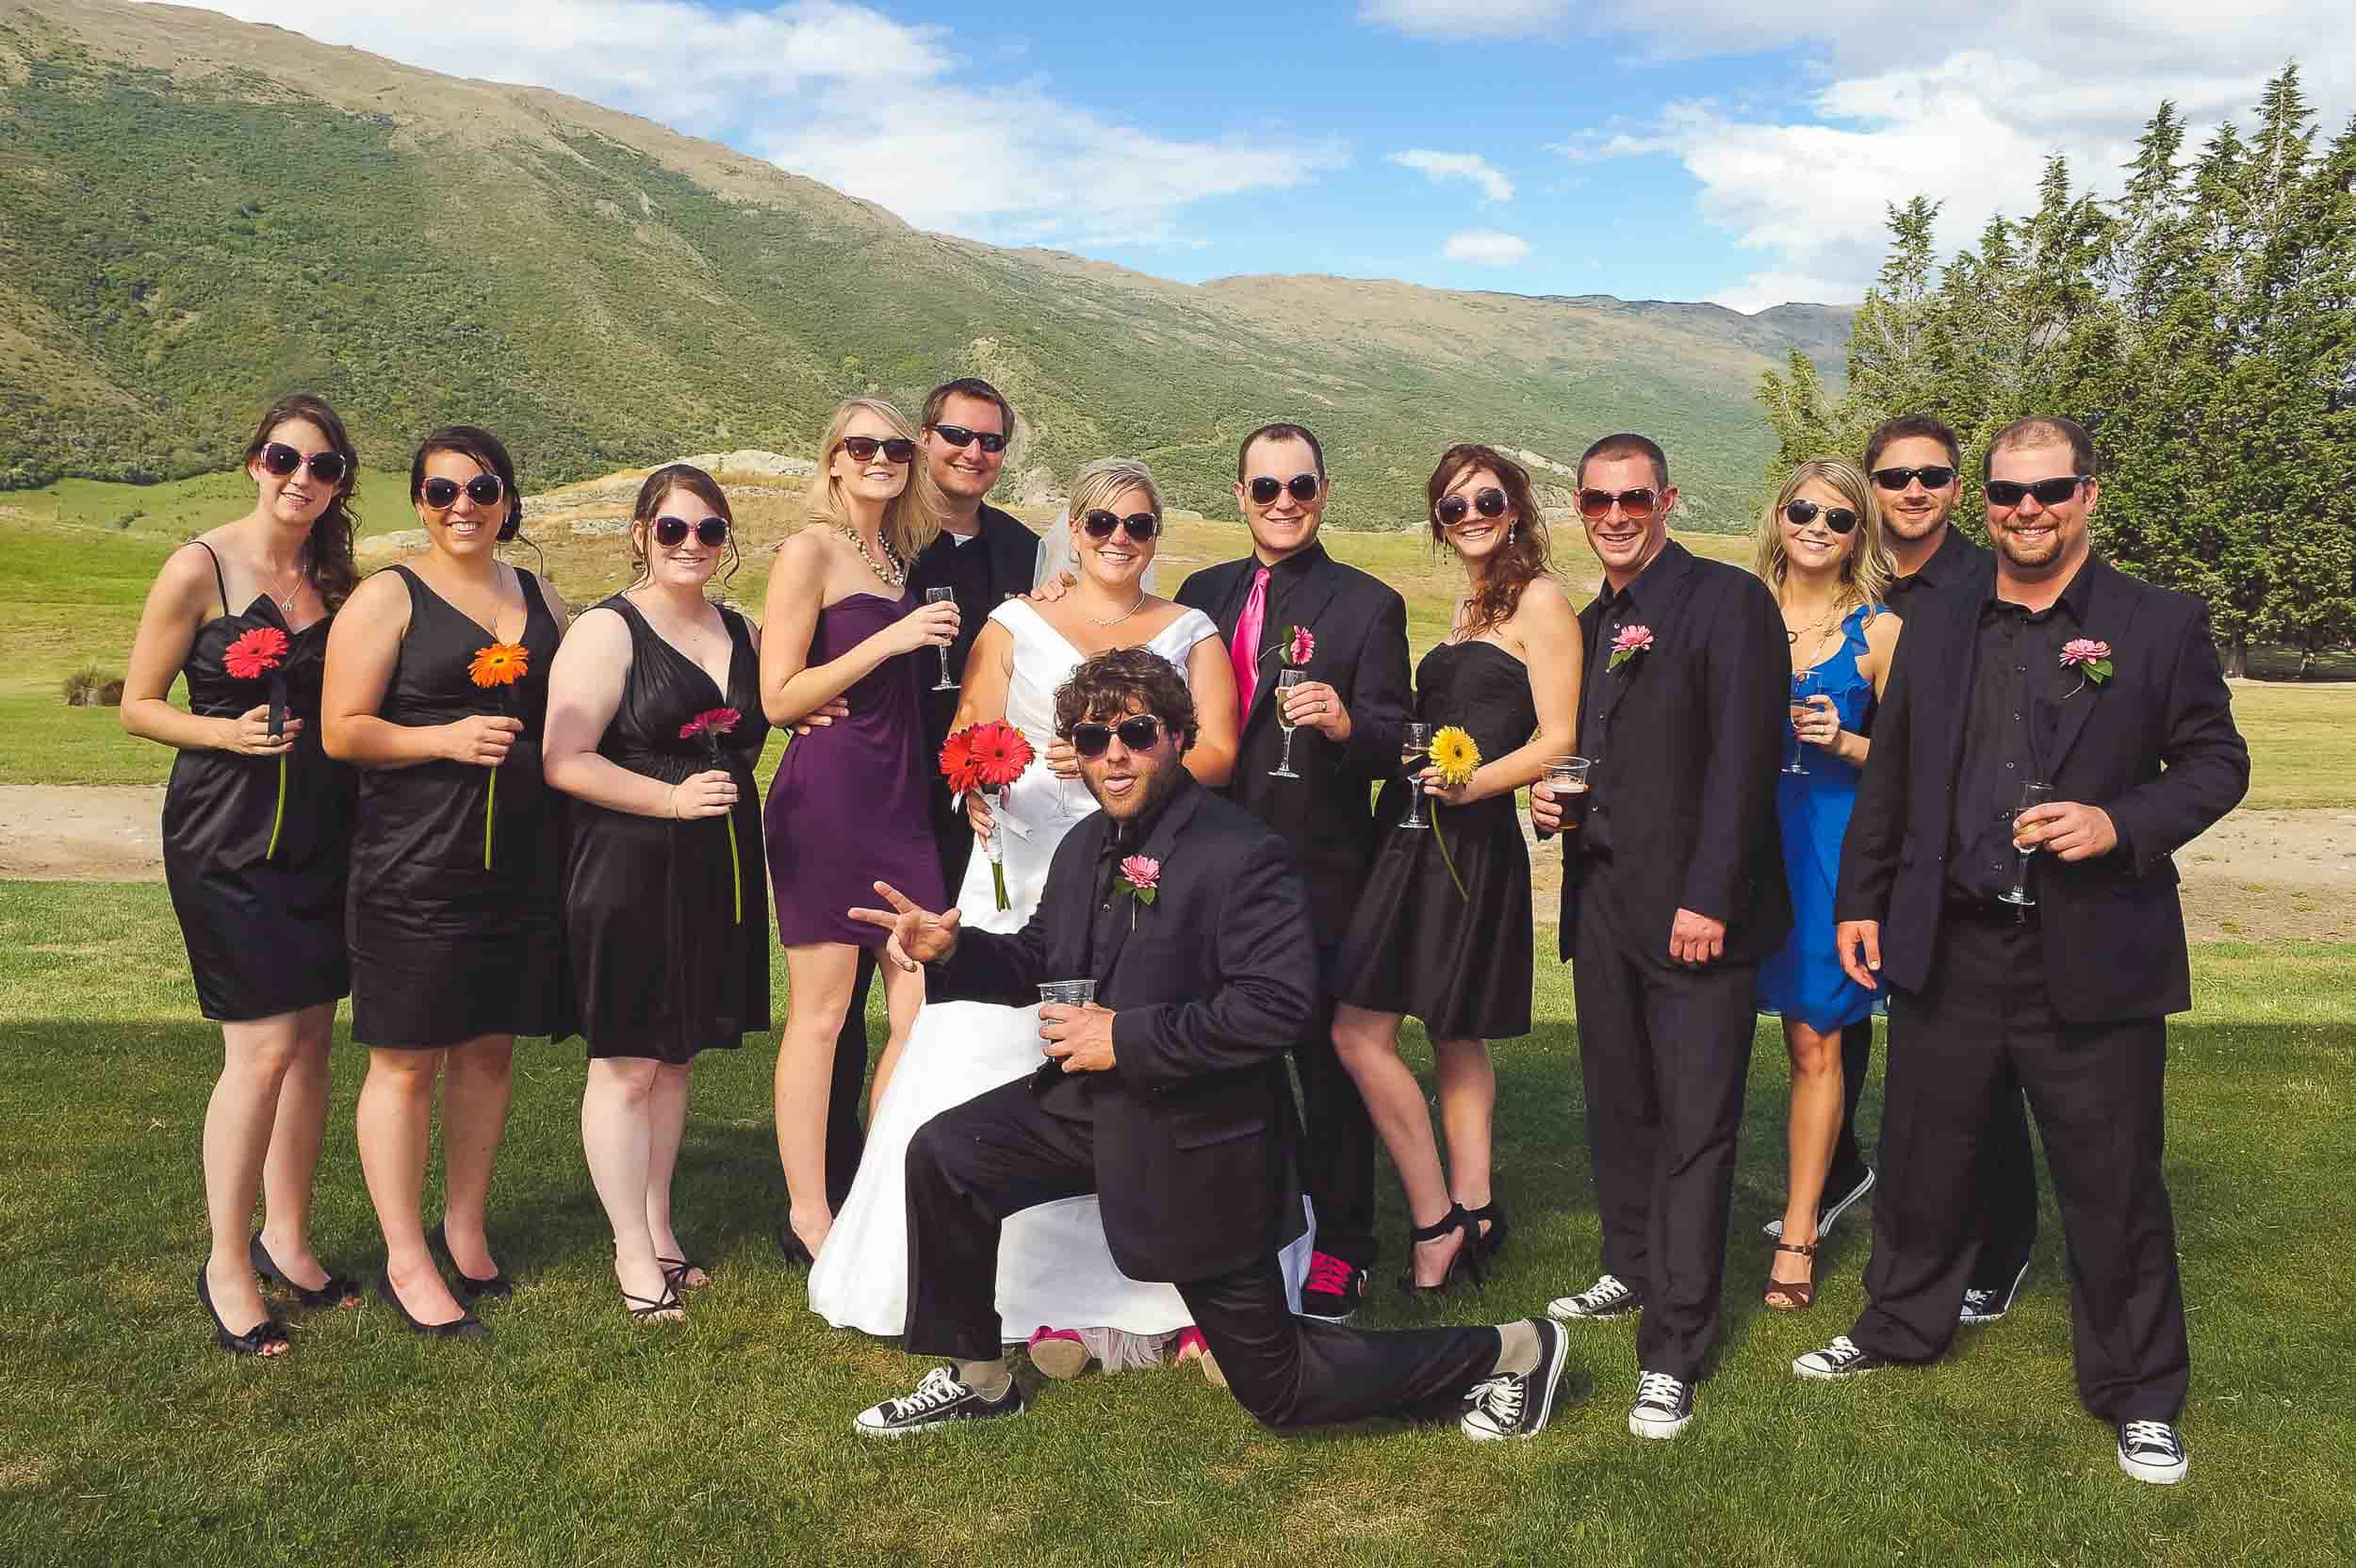 blog post featured image how to totally nail the family photos on your wedding day Queenstown Wedding Formals Peregrine winery ceremony-bridal-party-photo-fun peregrine winery family photo